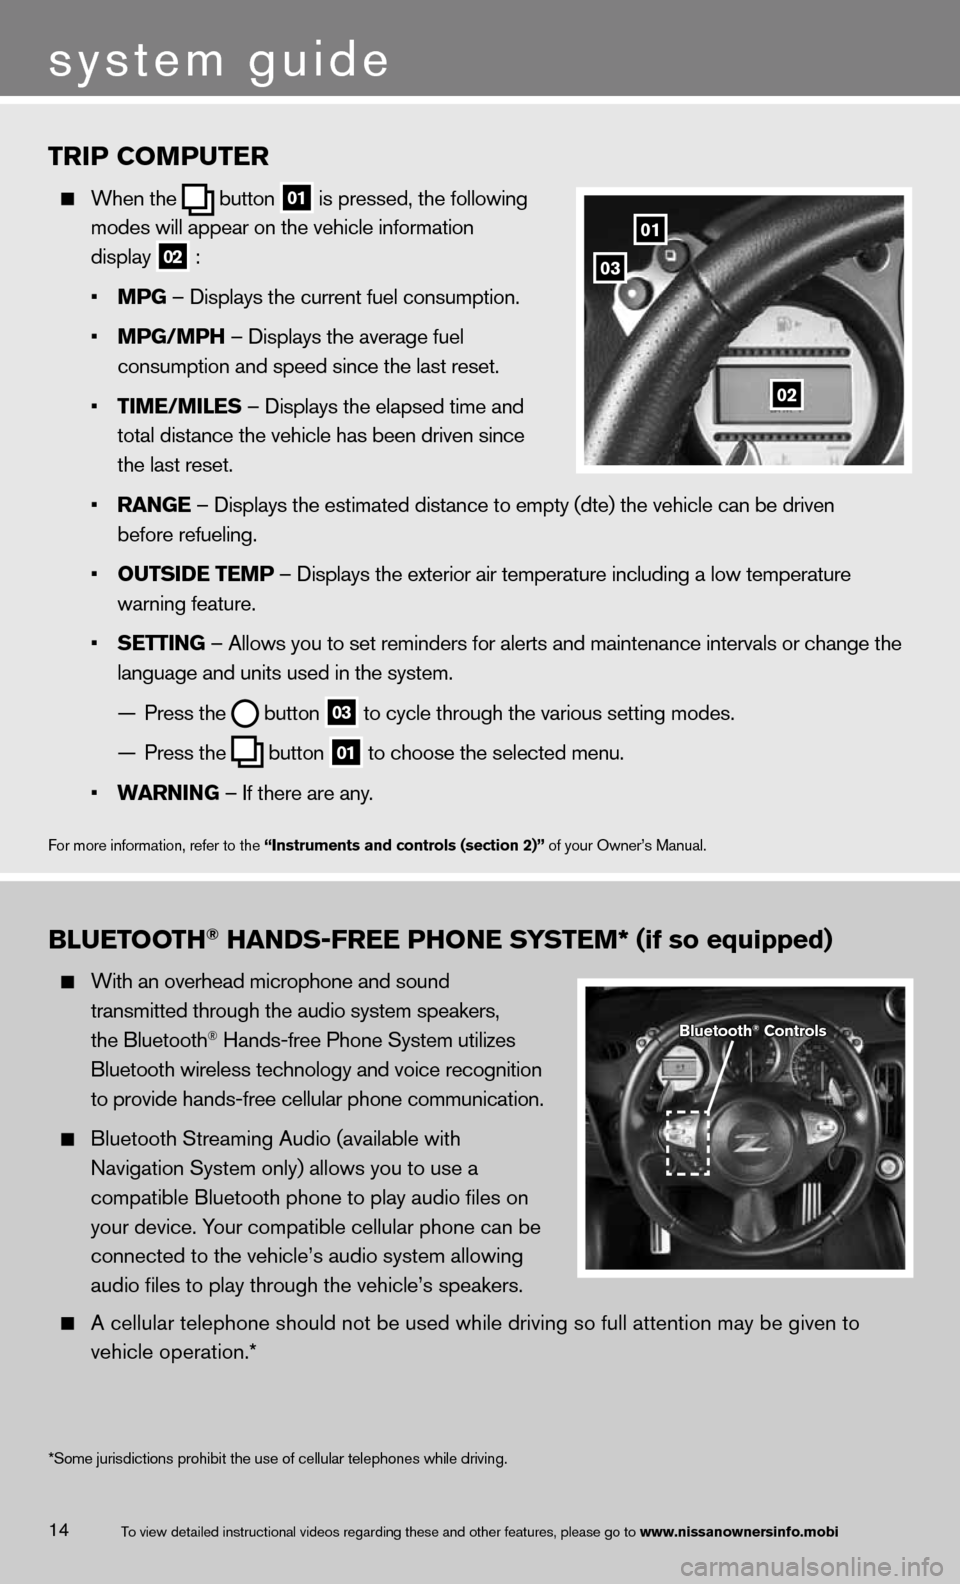 NISSAN 370Z ROADSTER 2013 Z34 Quick Reference Guide 14 TRIP COMPUTER   When \fhe   bu\f\fon  01 is pressed, \fhe fol\mlowing      modes will appear o\mn \fhe vehicle infor\mma\fion      display   02 :      • MPG – Displays \fhe cur\mren\f fuel cons